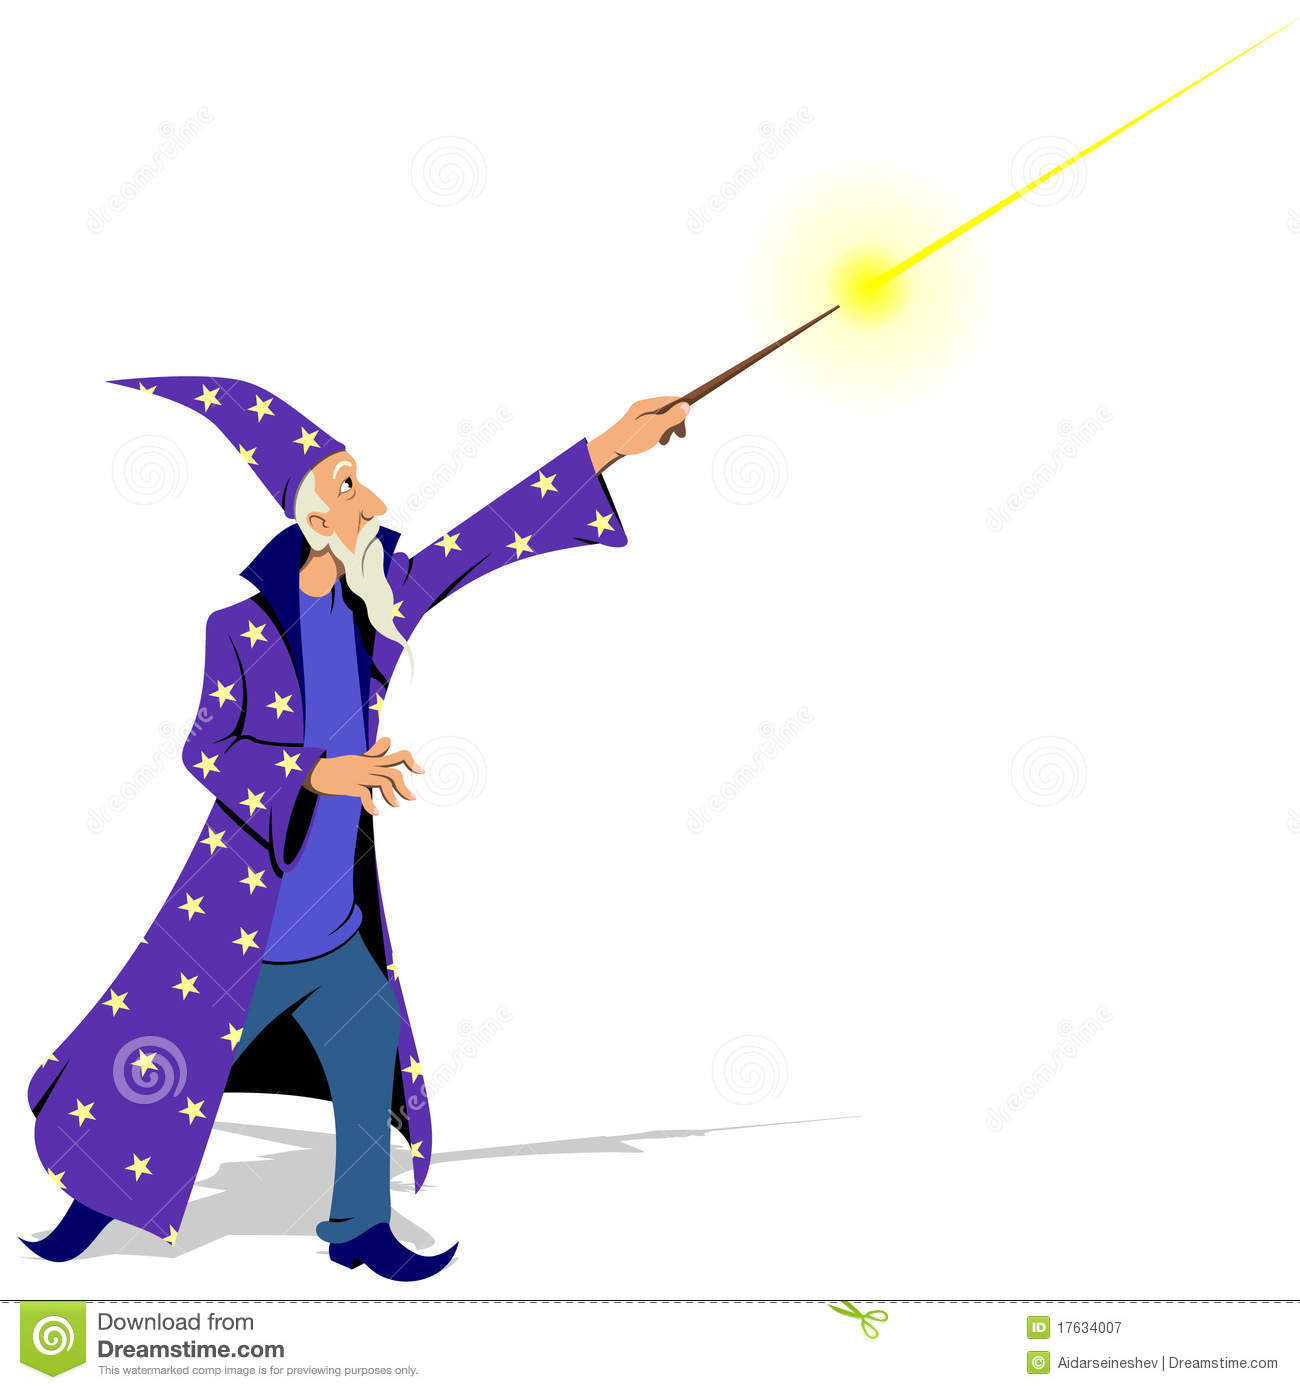 Wizard Royalty Free Stock Photography - Image: 17634007